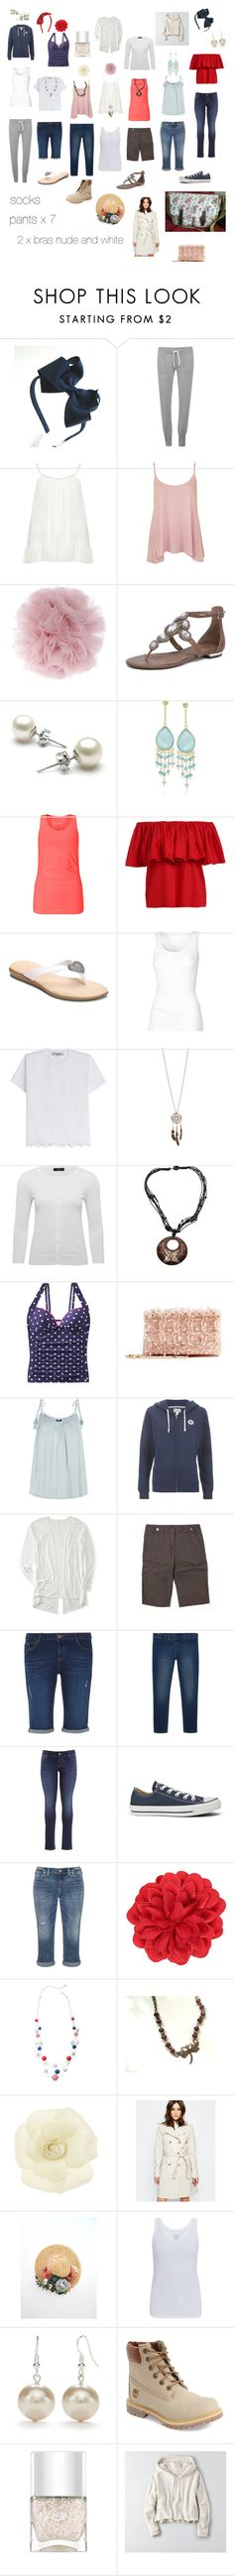 """""""hols"""" by claireefordham ❤ liked on Polyvore featuring Converse, Zizzi, WearAll, Fleur du Mal, Diana Ferrari, Ross-Simons, Ted Baker, Aerosoles, Fat Face and Valentino"""